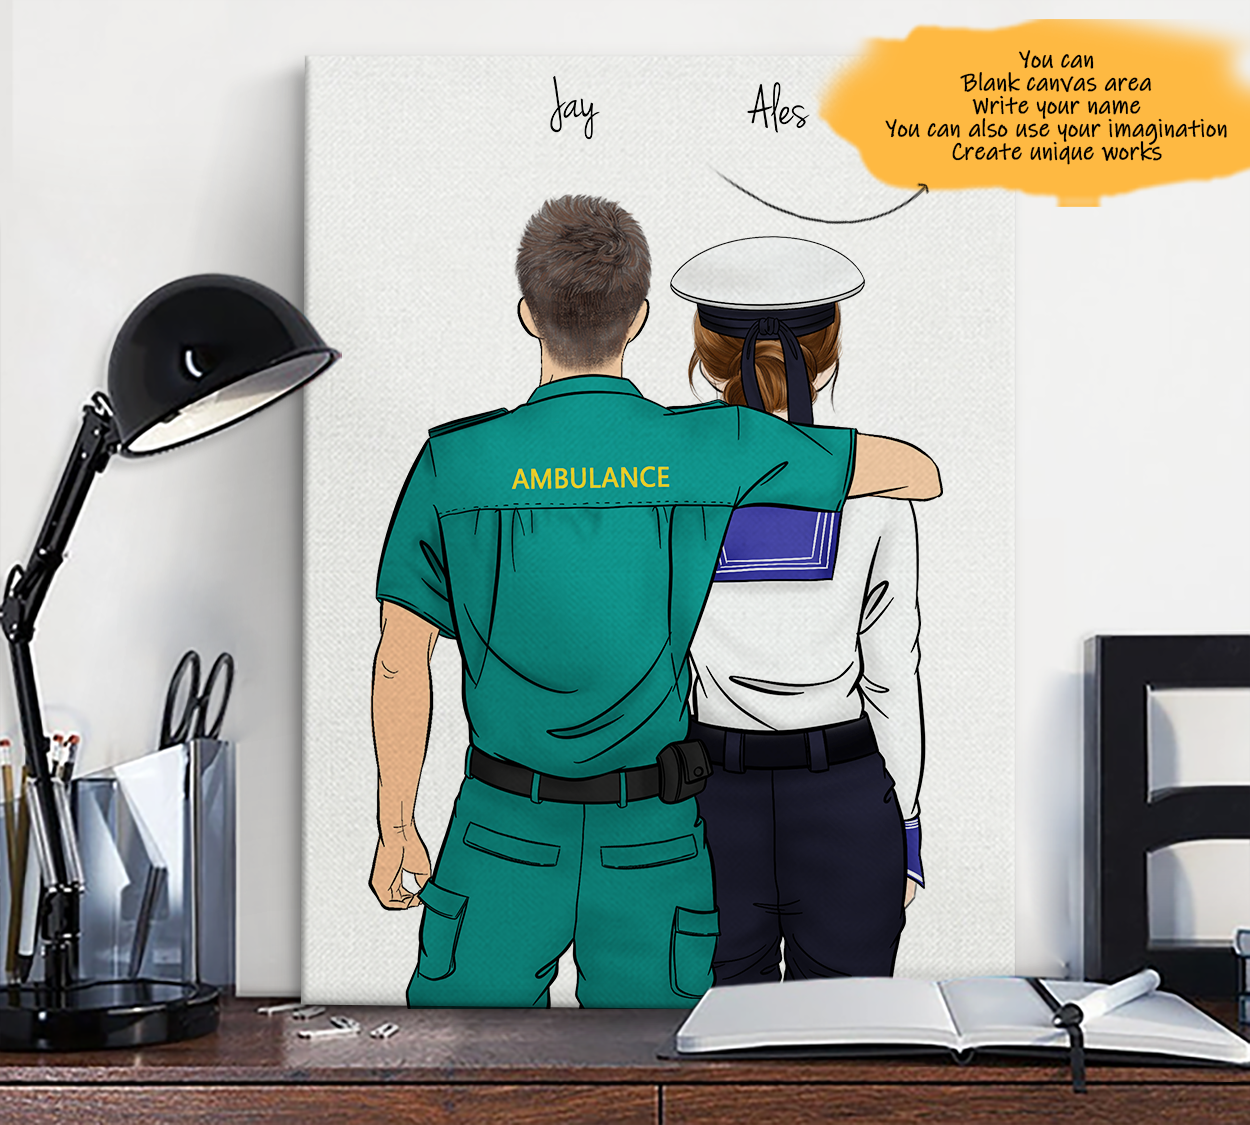 He is My Friend! Hand Draw Custom Canvas-Print Gift AMBULANCE-Light&Navy